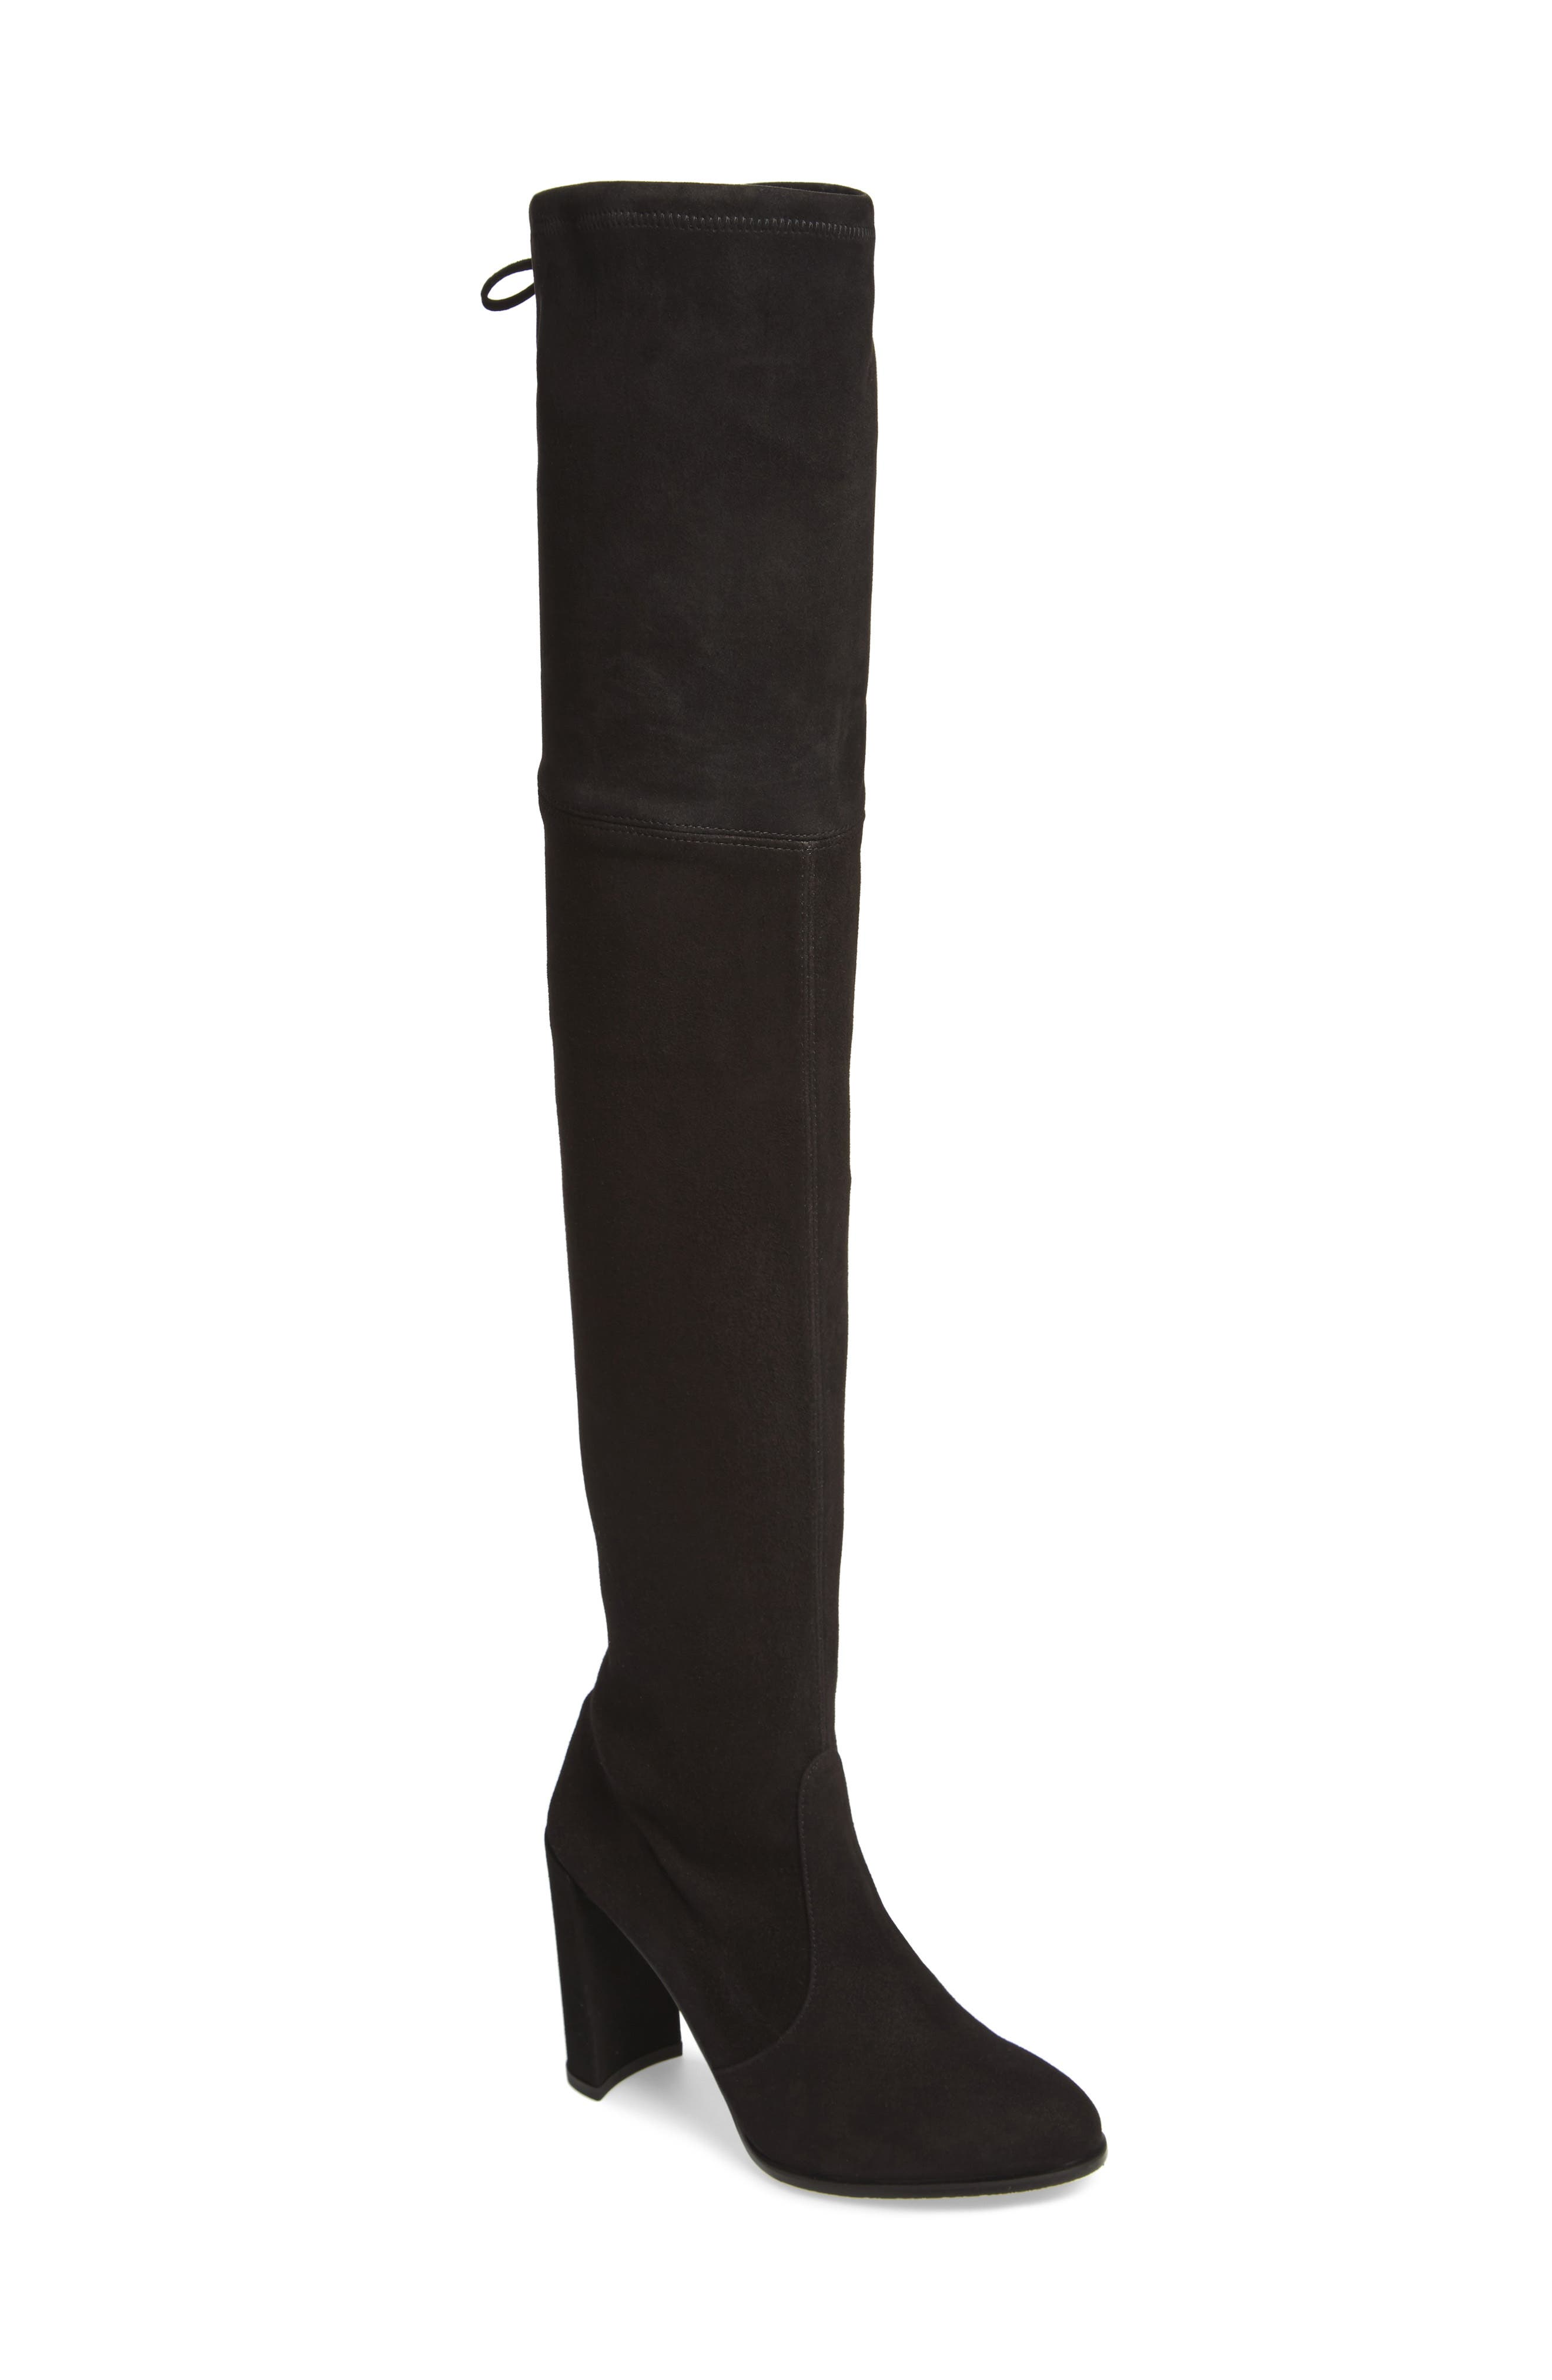 Hiline Over the Knee Boot,                         Main,                         color, Black Suede